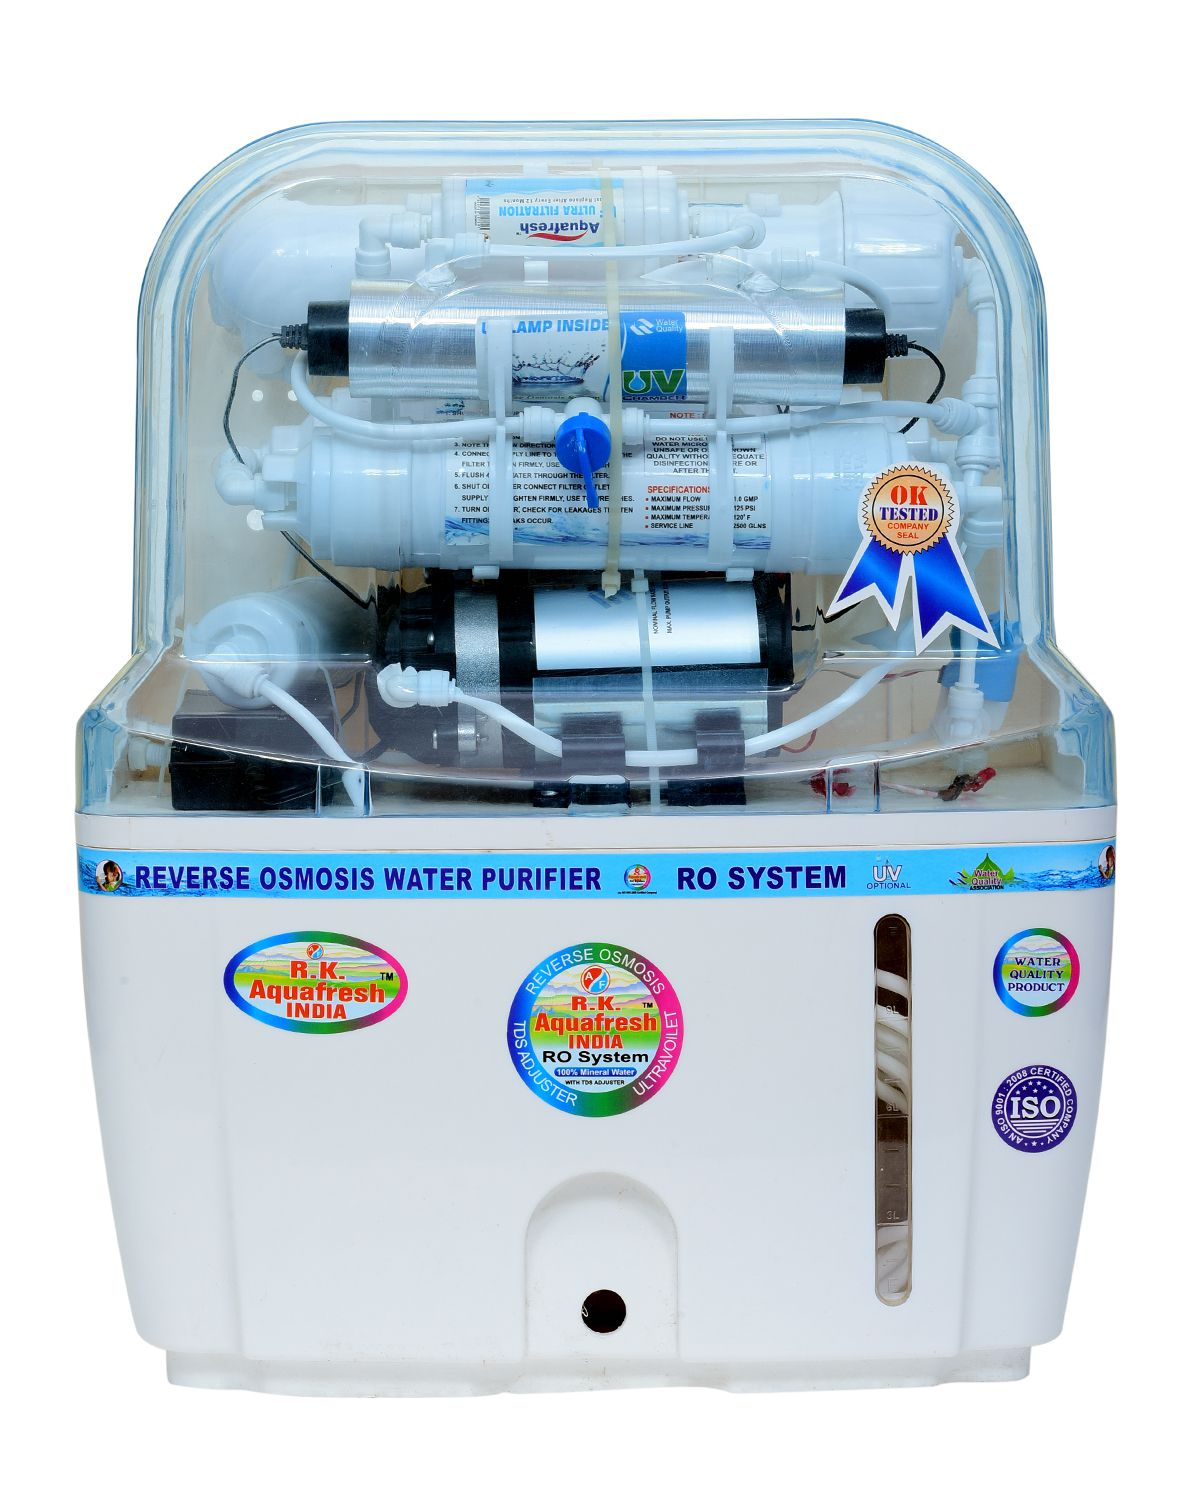 R.K. Aqua Fresh India SWIFT 15ltrs 14stage Advanced Mineral  Technology ROUVUF Water Purifier